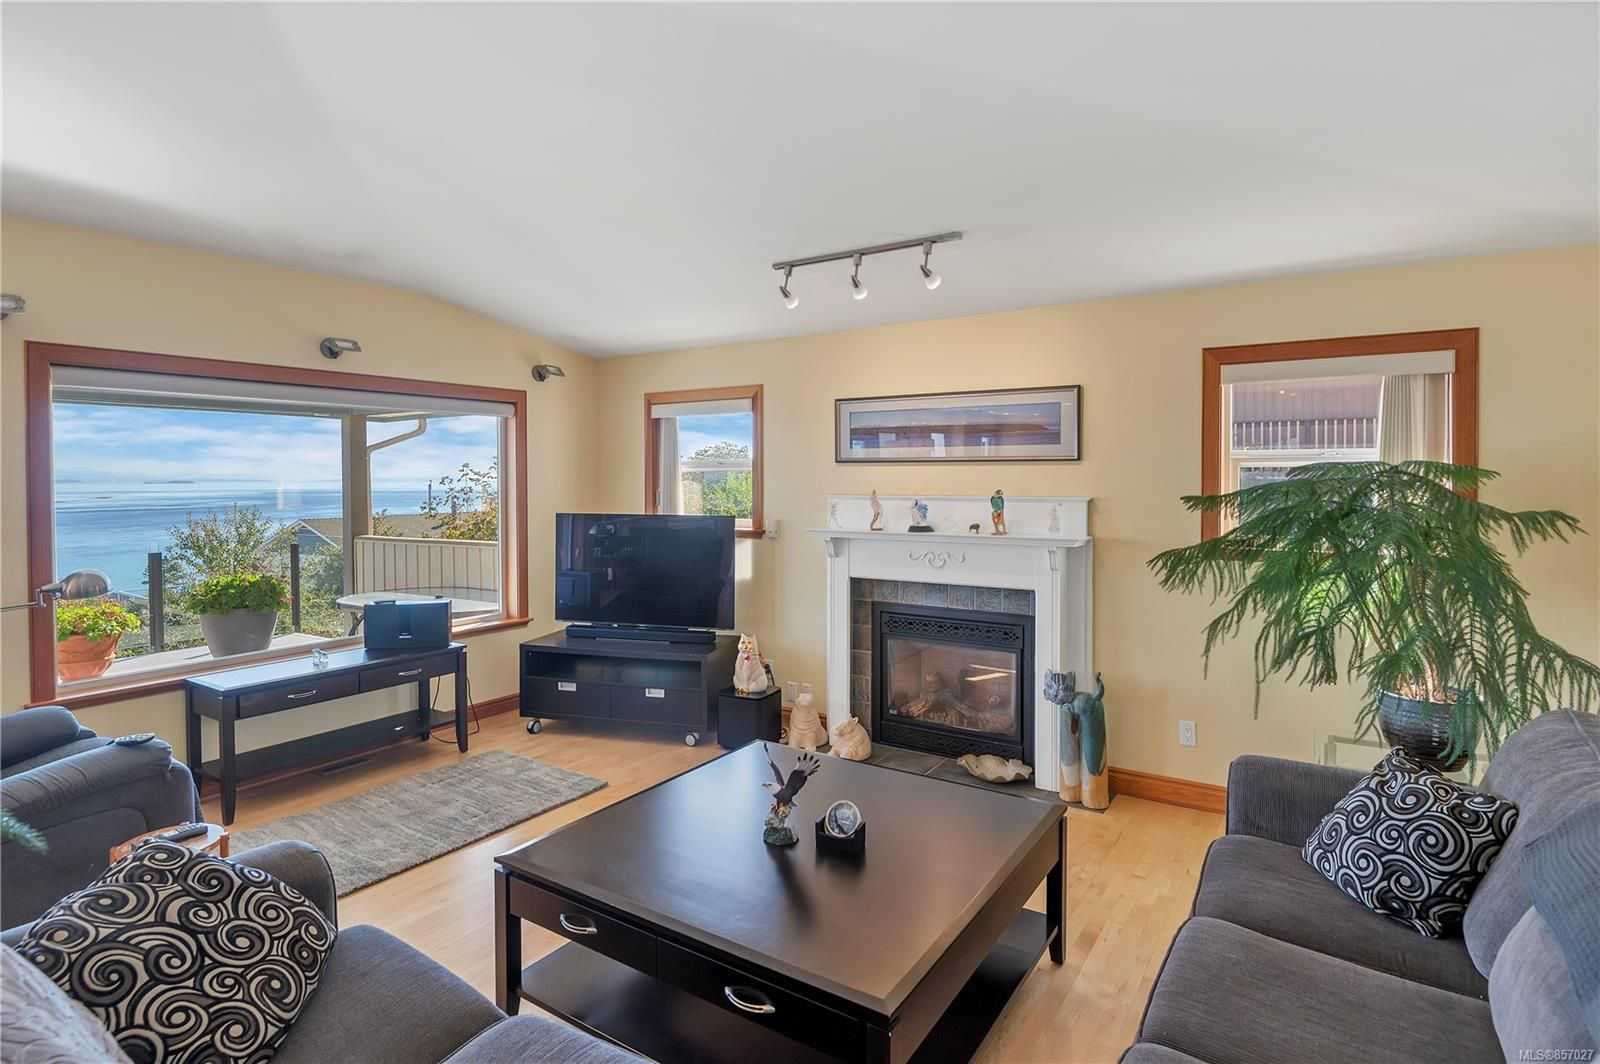 Photo 13: Photos: 253 S Alder St in : CR Campbell River South House for sale (Campbell River)  : MLS®# 857027